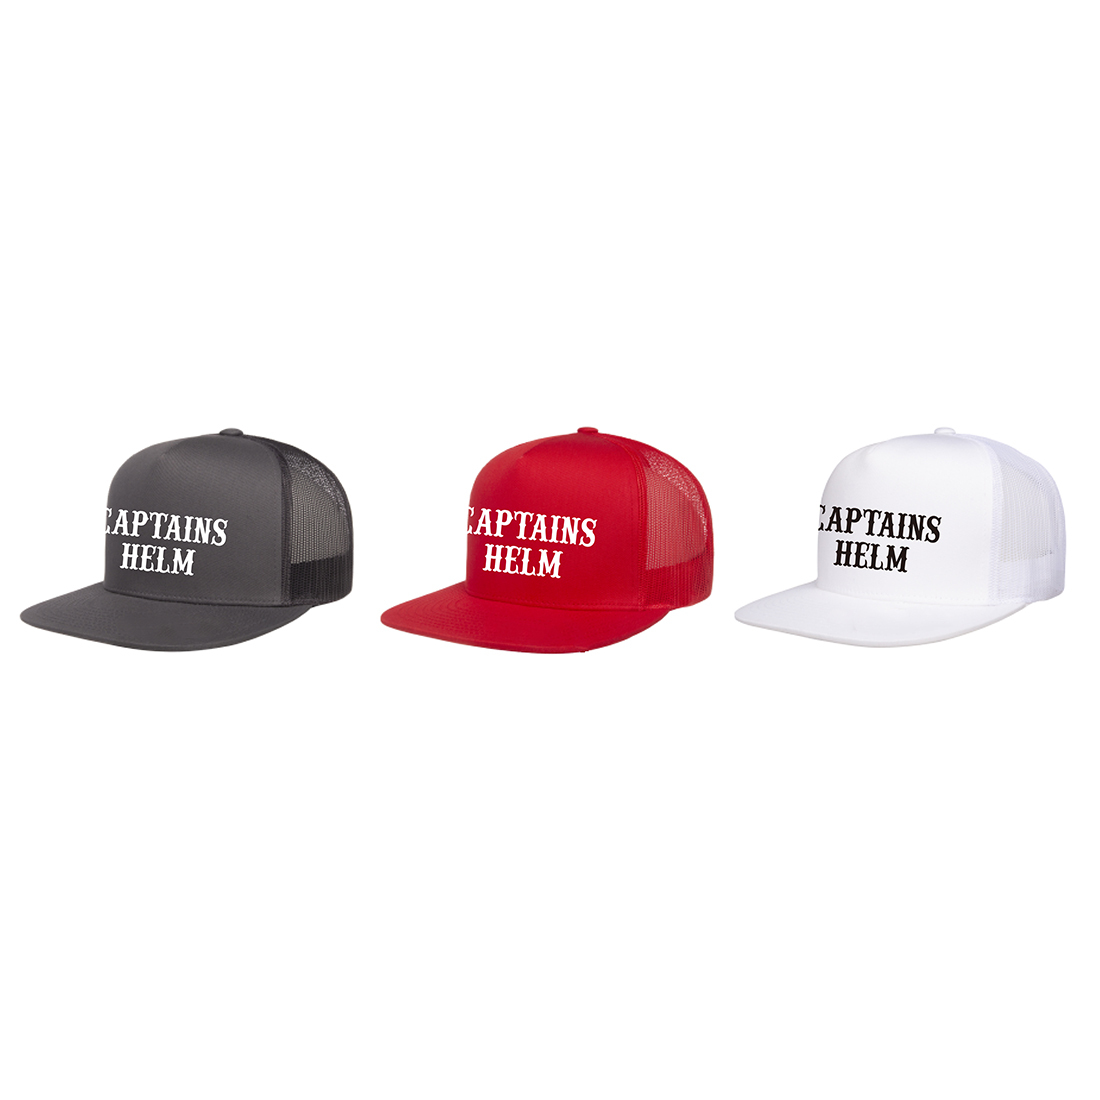 CAPTAINS HELM #Local Logo Mesh Cap